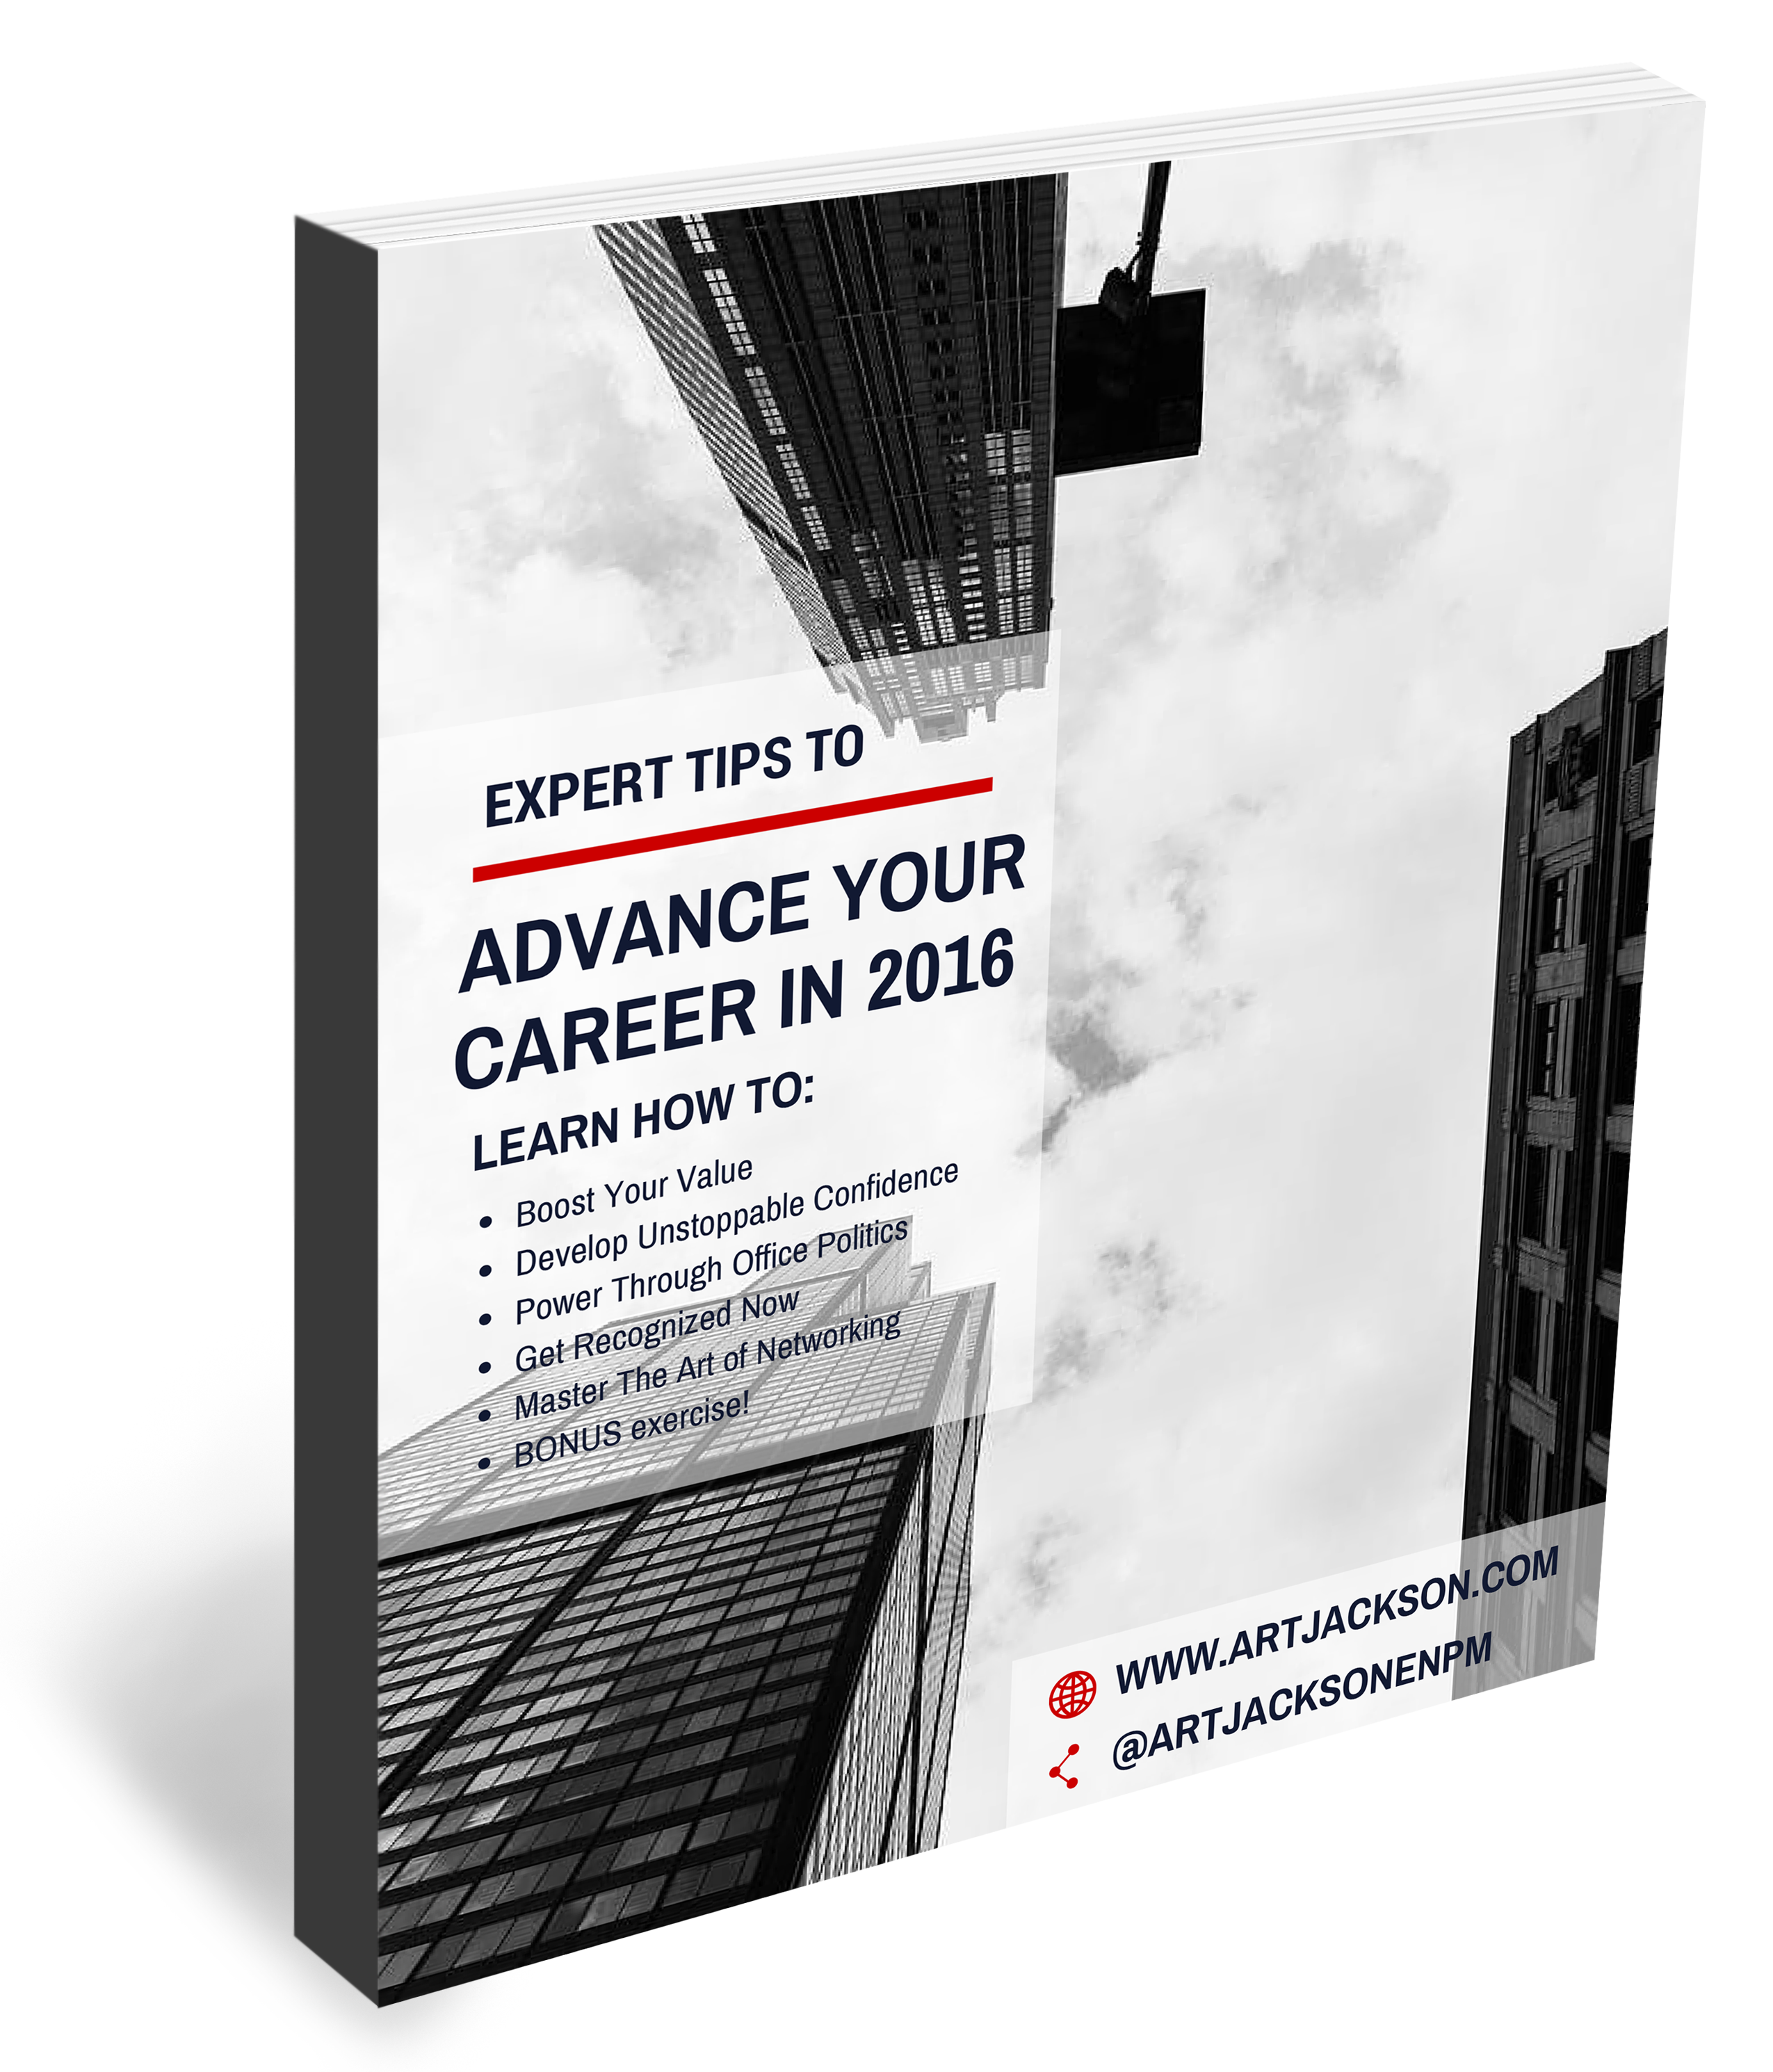 expert tips to advance your career in 2016